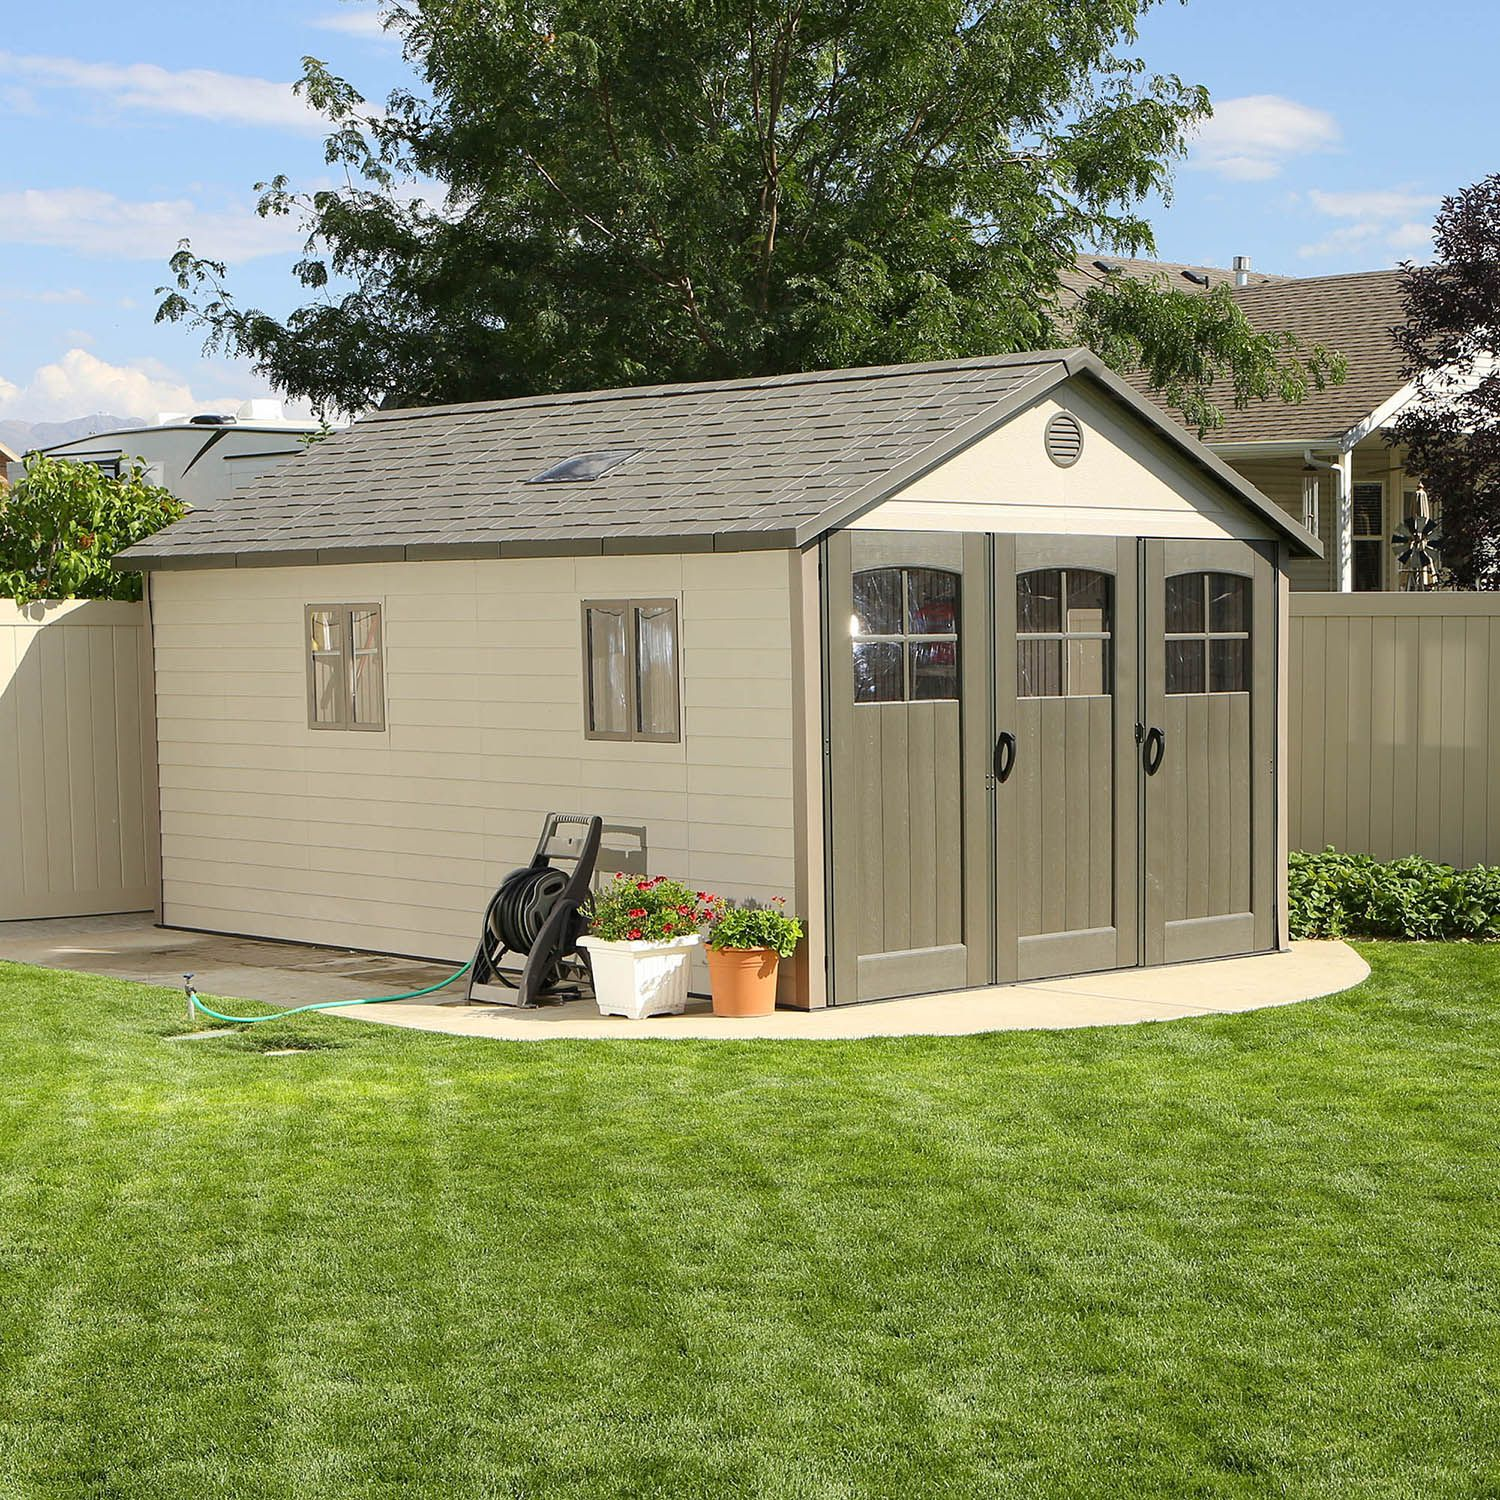 Garage Storage Building x Sale Now with Fast Free Shipping